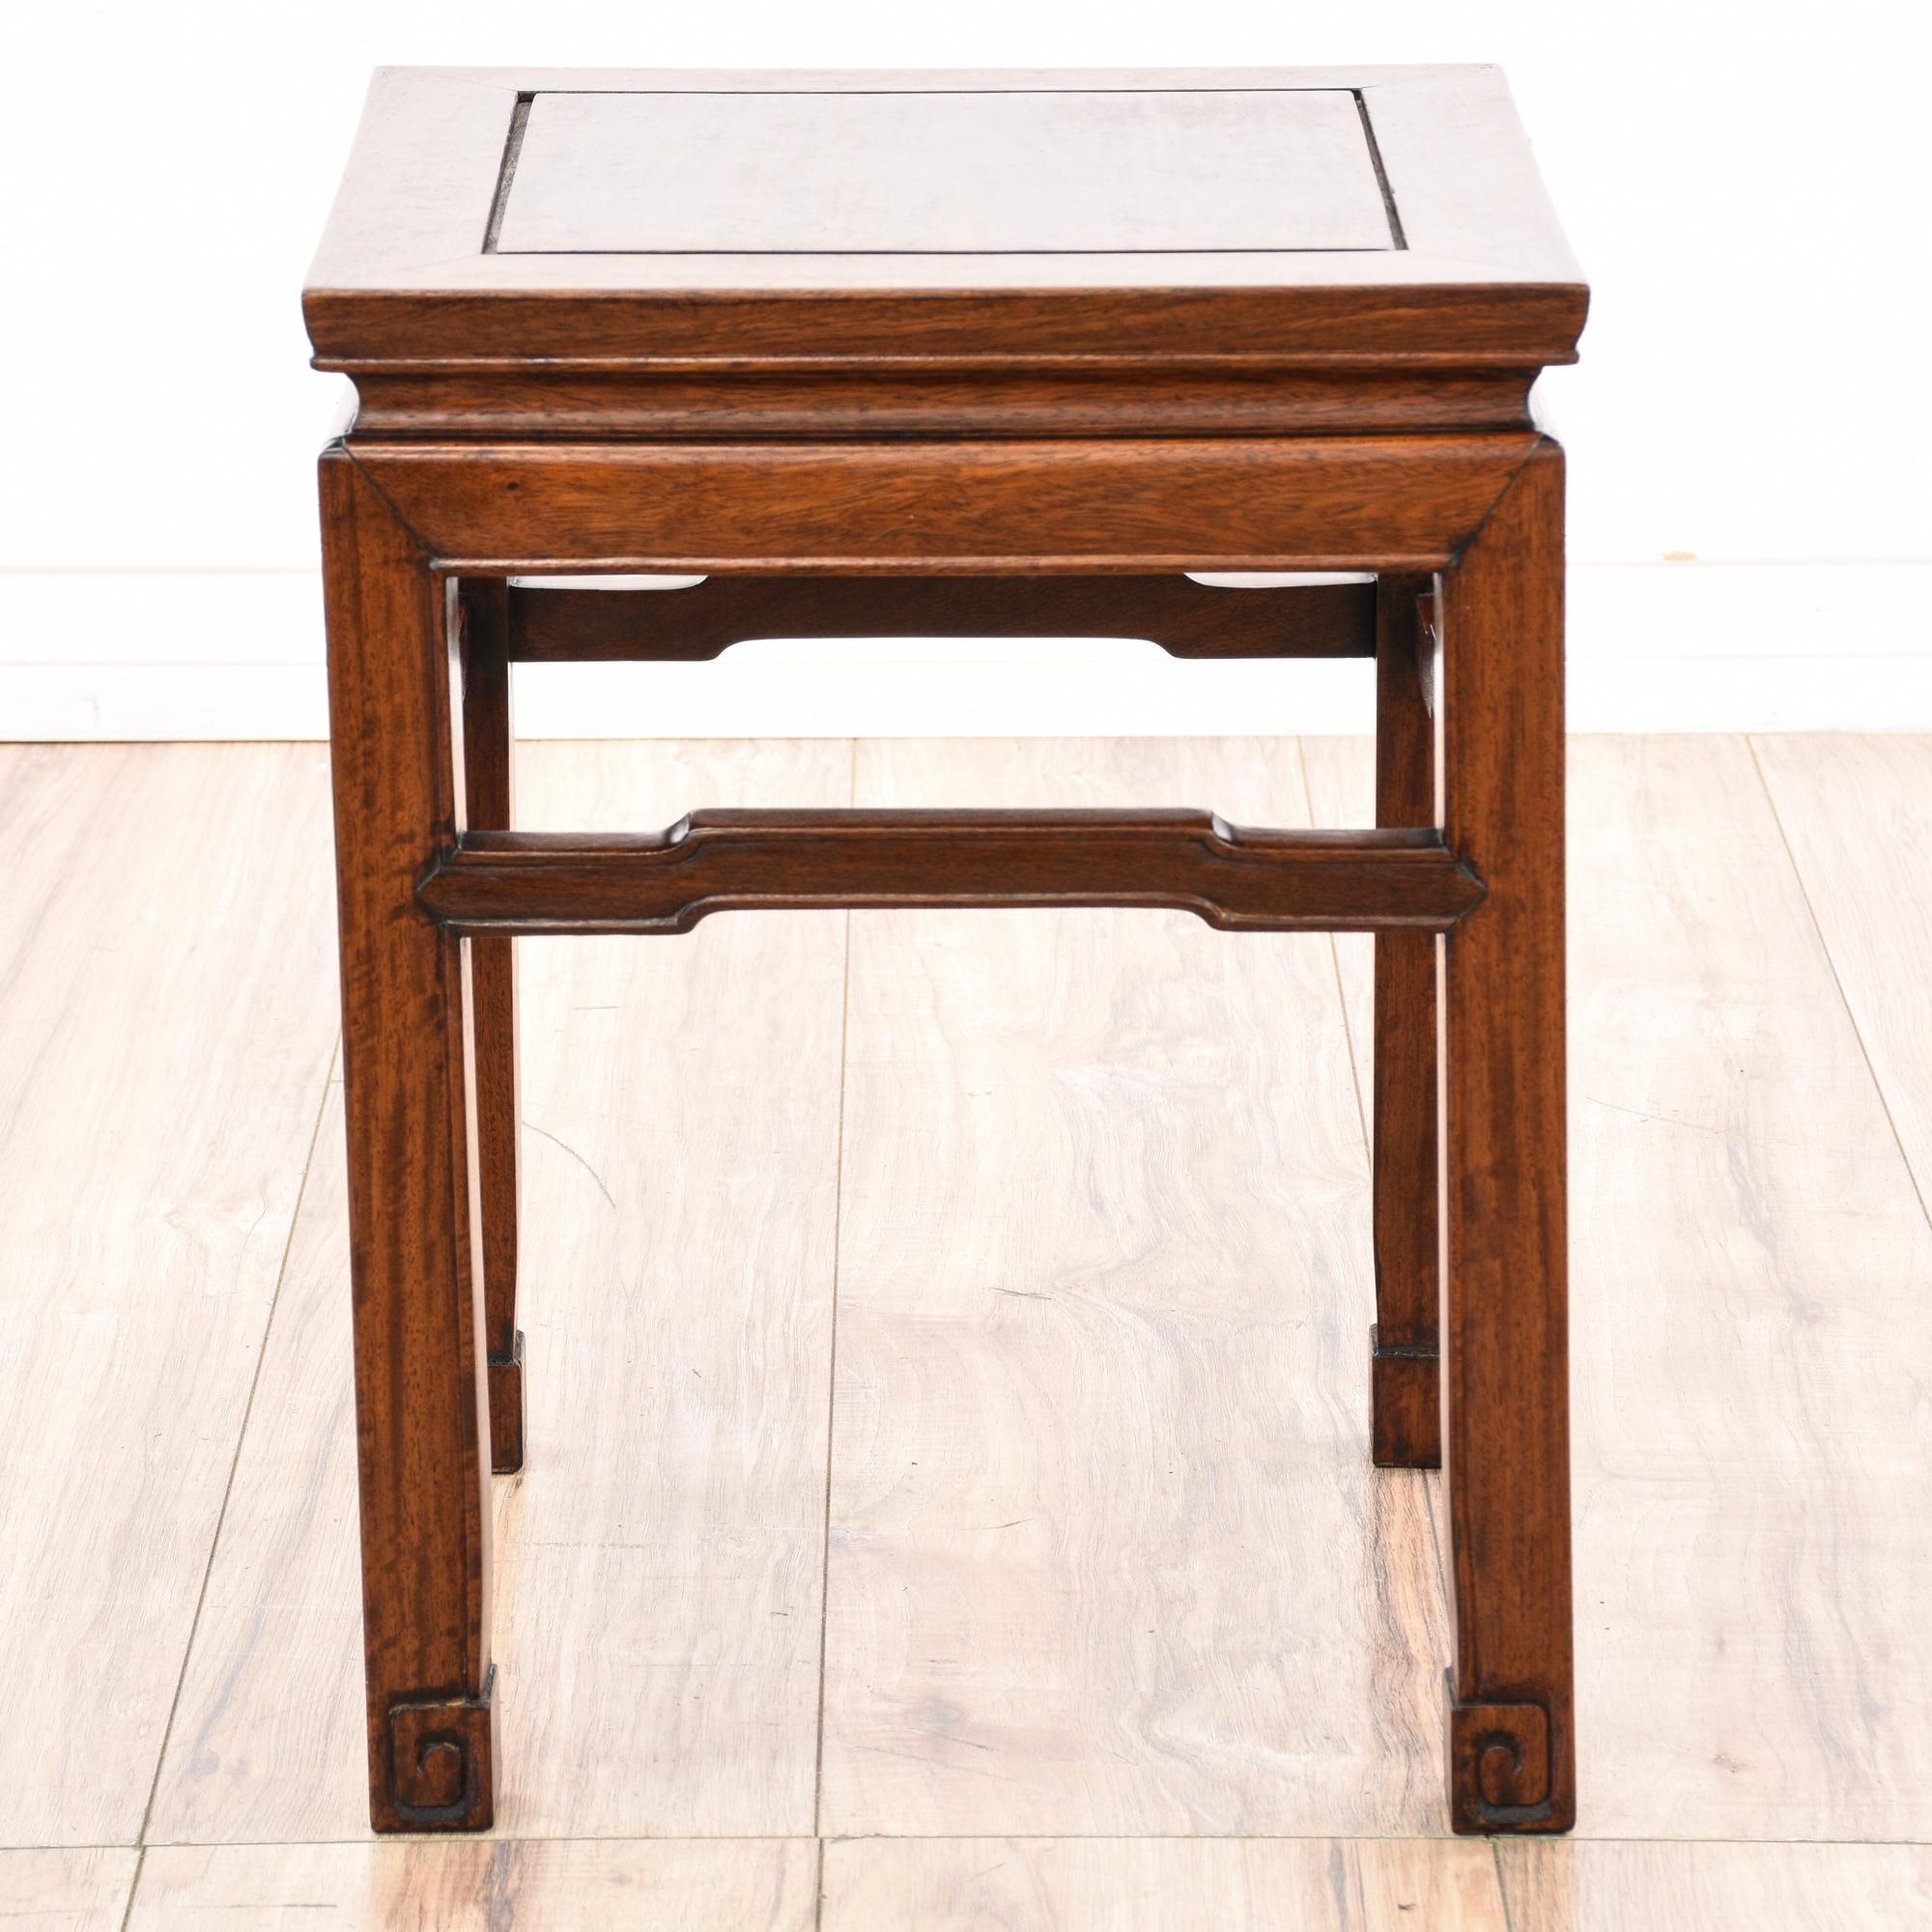 Small Asian Rosewood End Table As Tables and tyxgb76ajthis